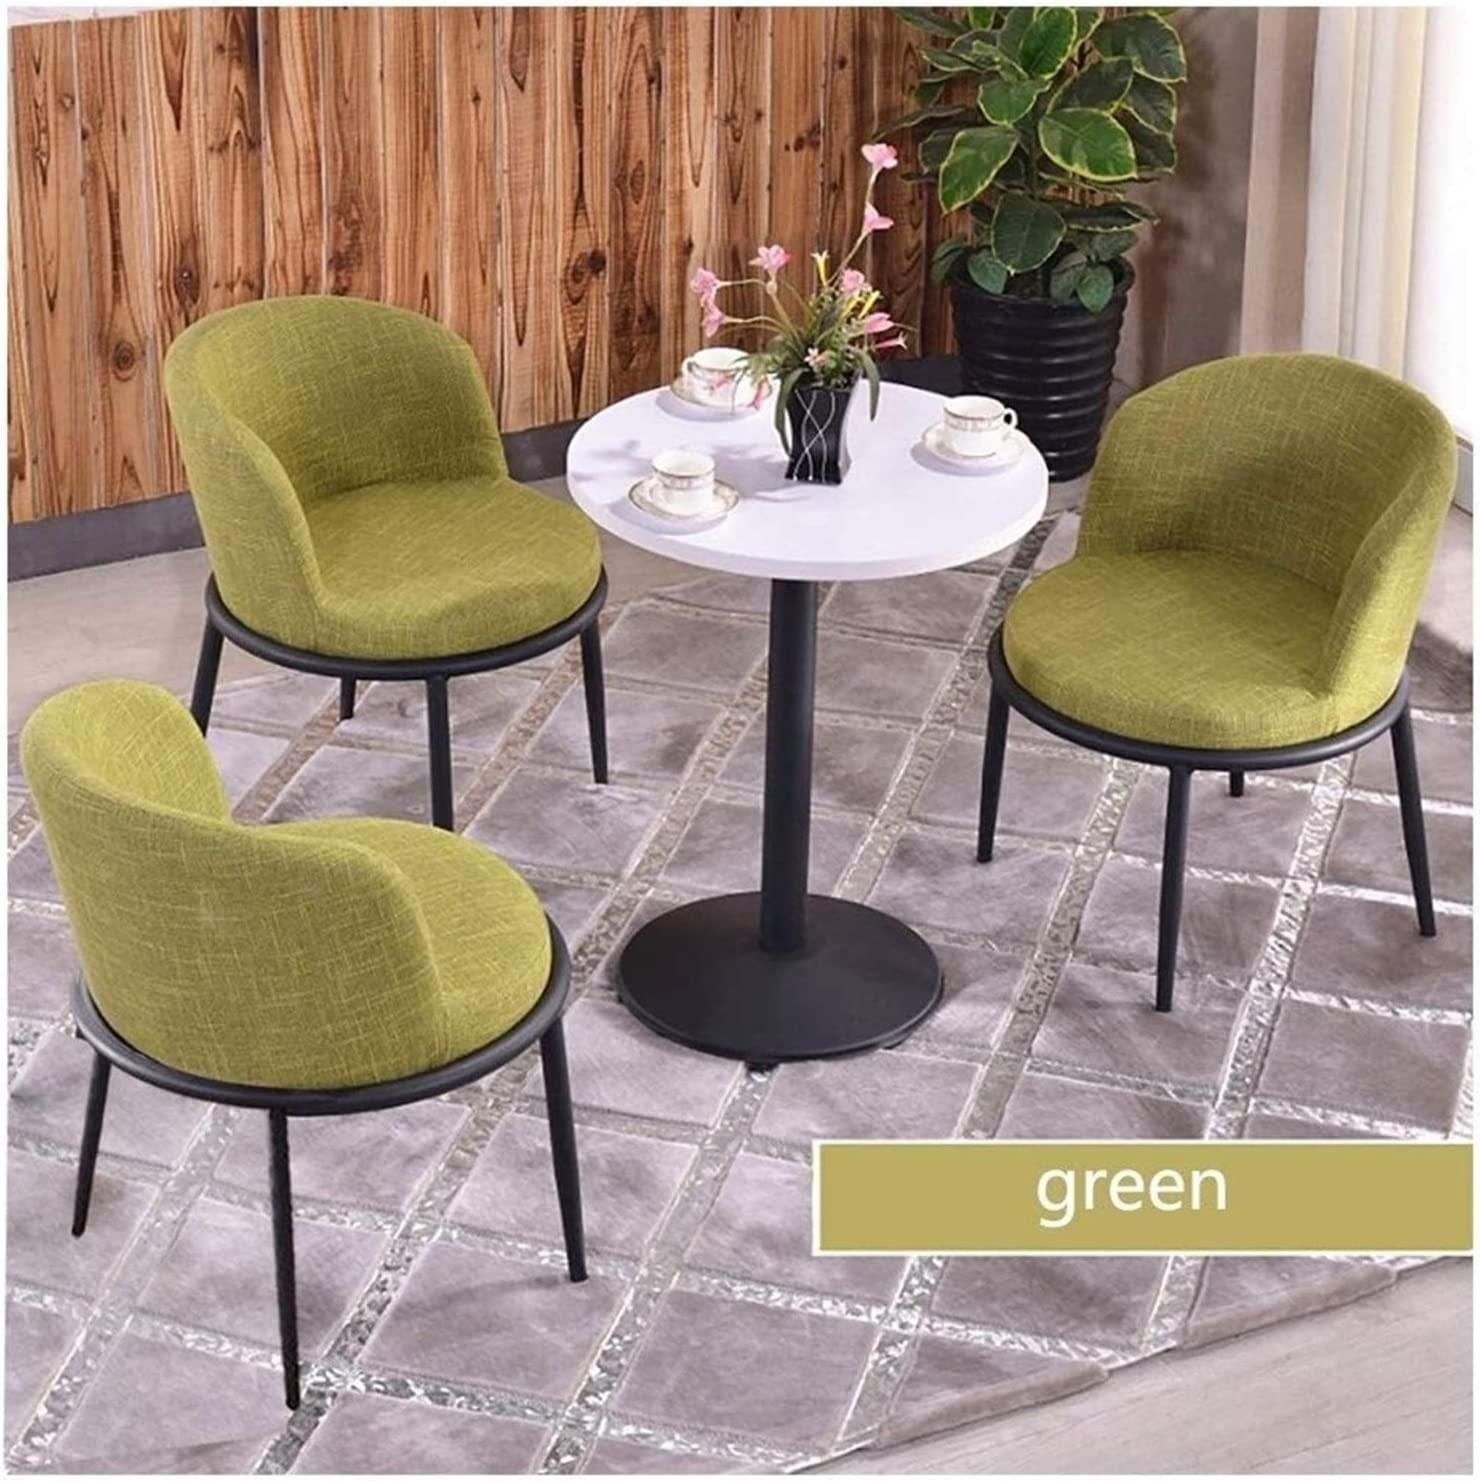 ZHZH NEW Dining Max 73% OFF Table and Chair Room Living Set